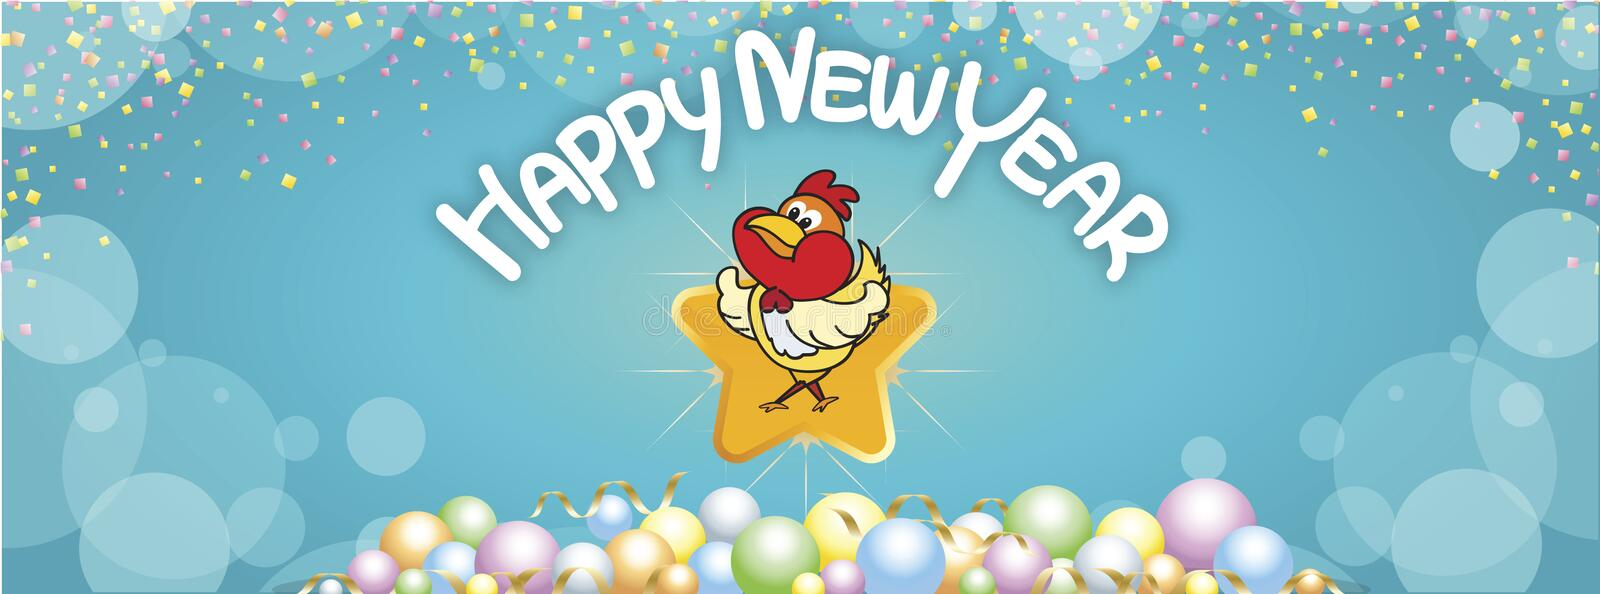 Background Happy New Year greetings stock images